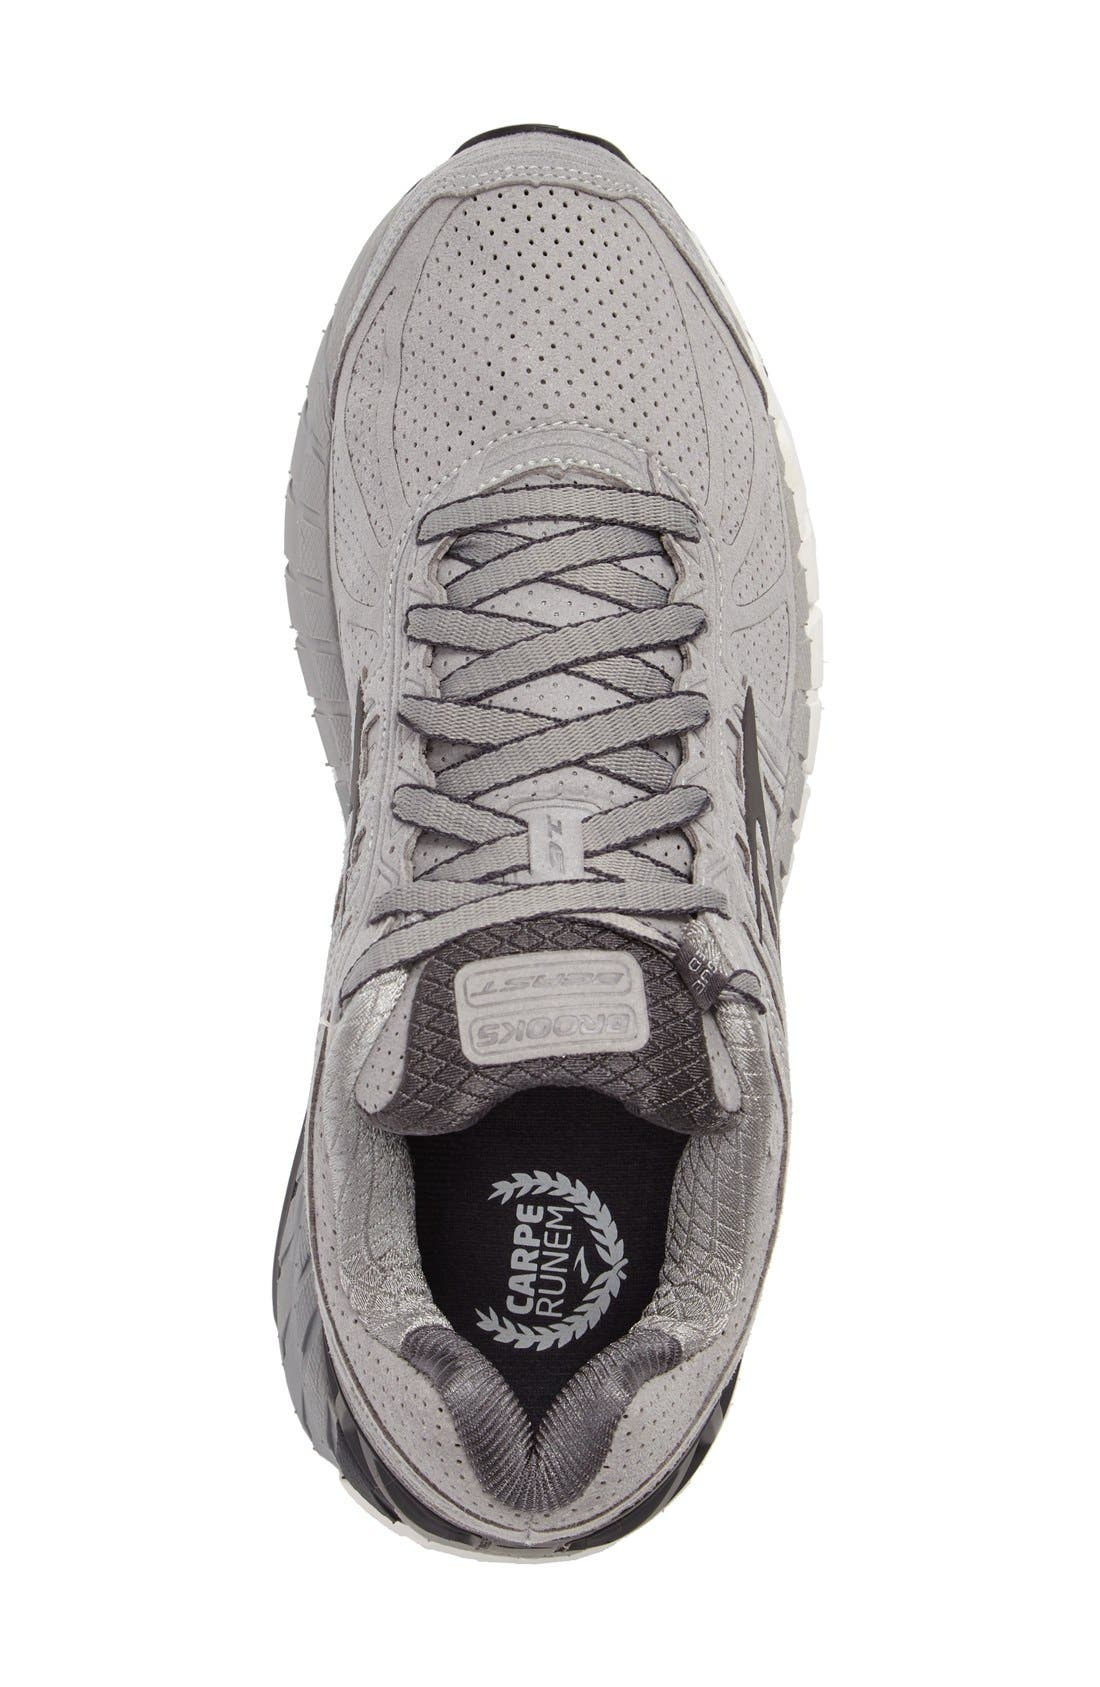 Beast 16 LE Running Shoe,                             Alternate thumbnail 3, color,                             Silver/ Anthracite